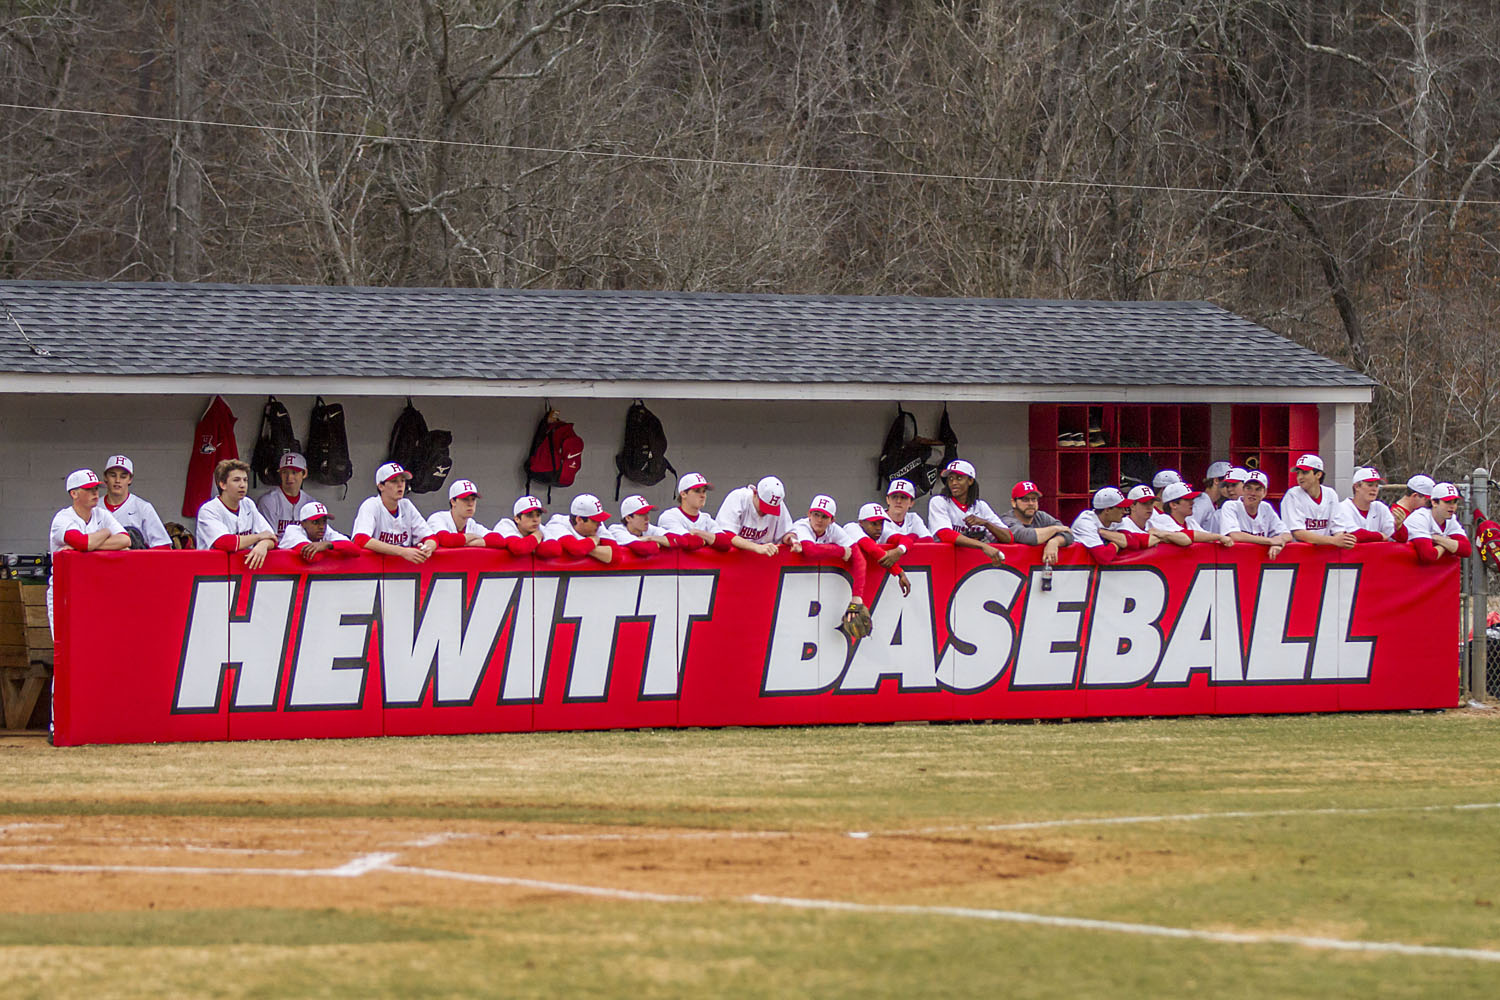 Hewitt-Trussville baseball shakes up concessions for 2015 season